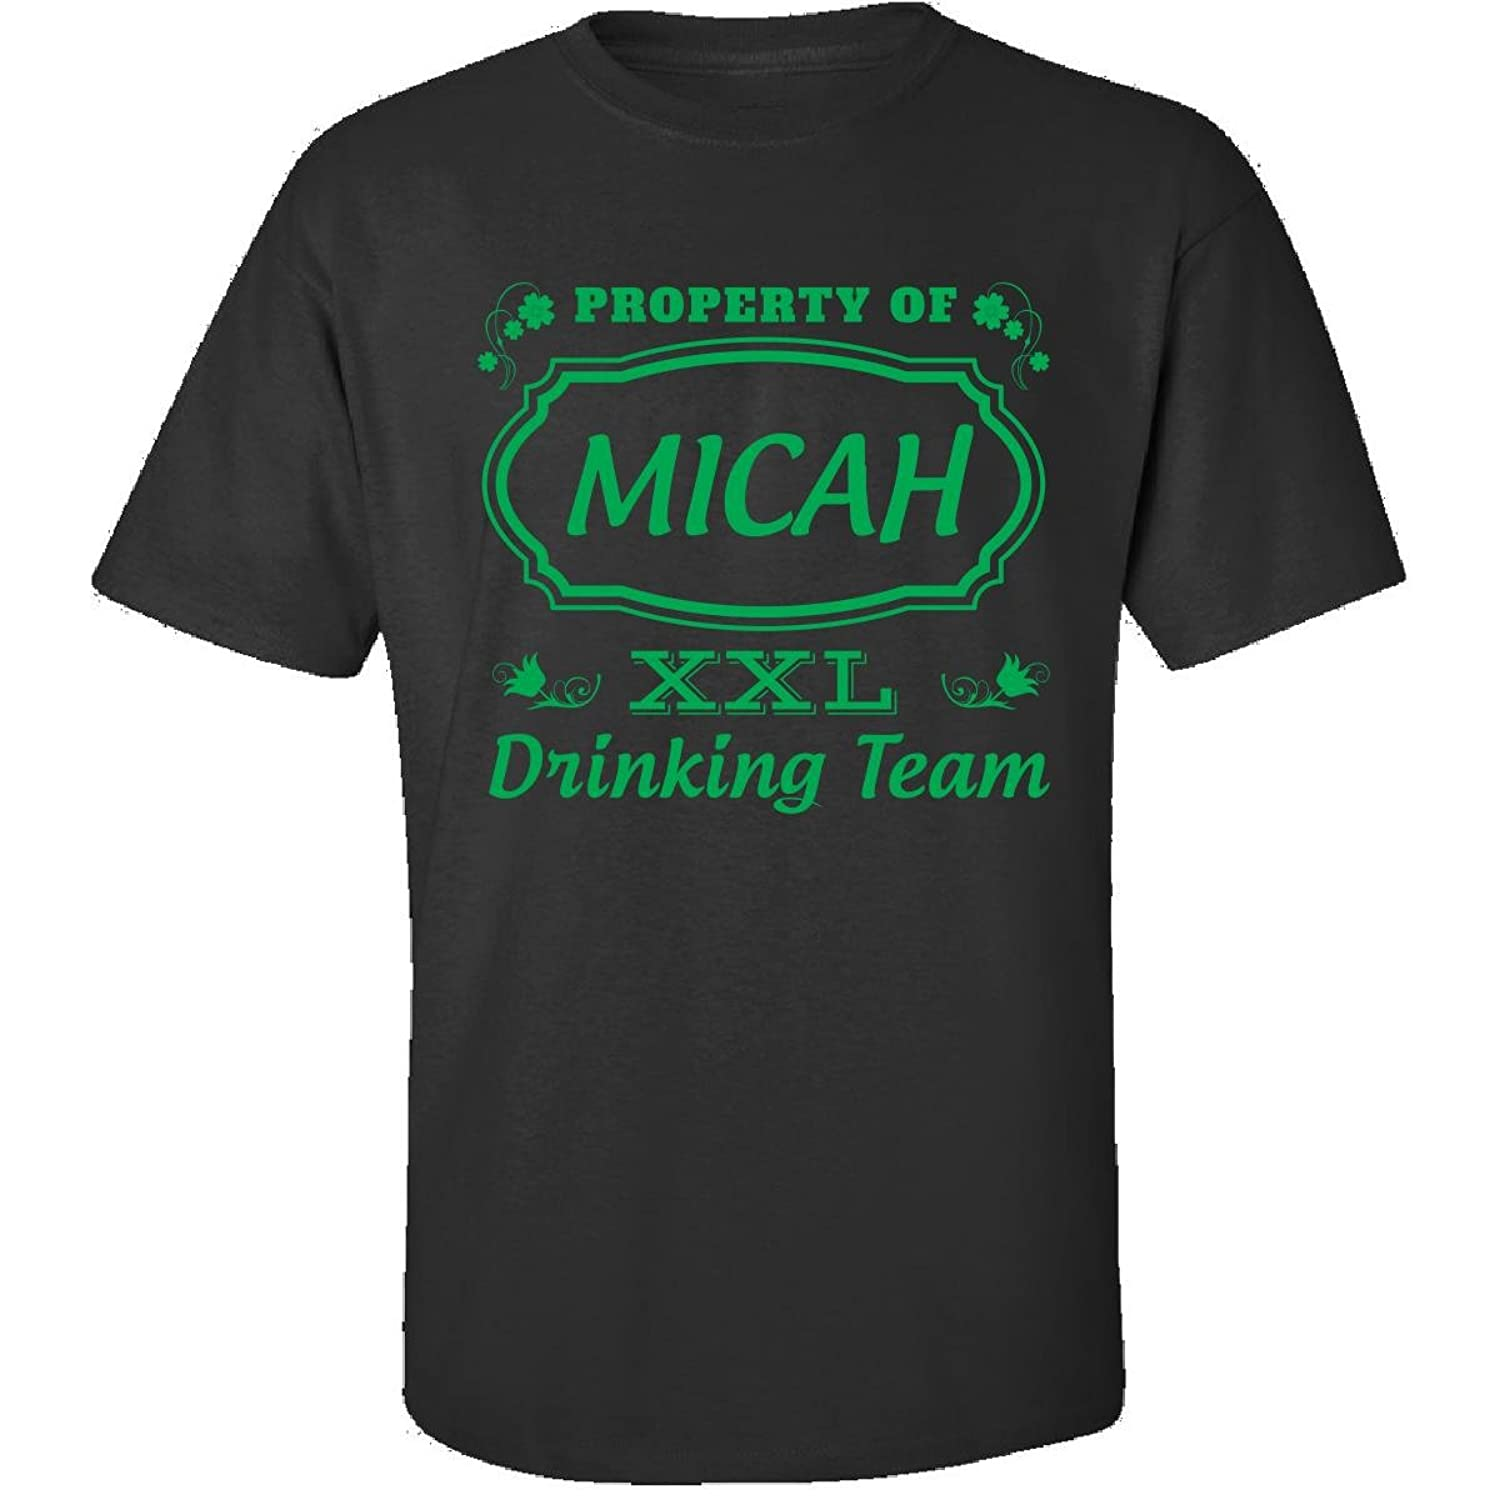 Property Of Micah St Patrick Day Beer Drinking Team - Adult Shirt